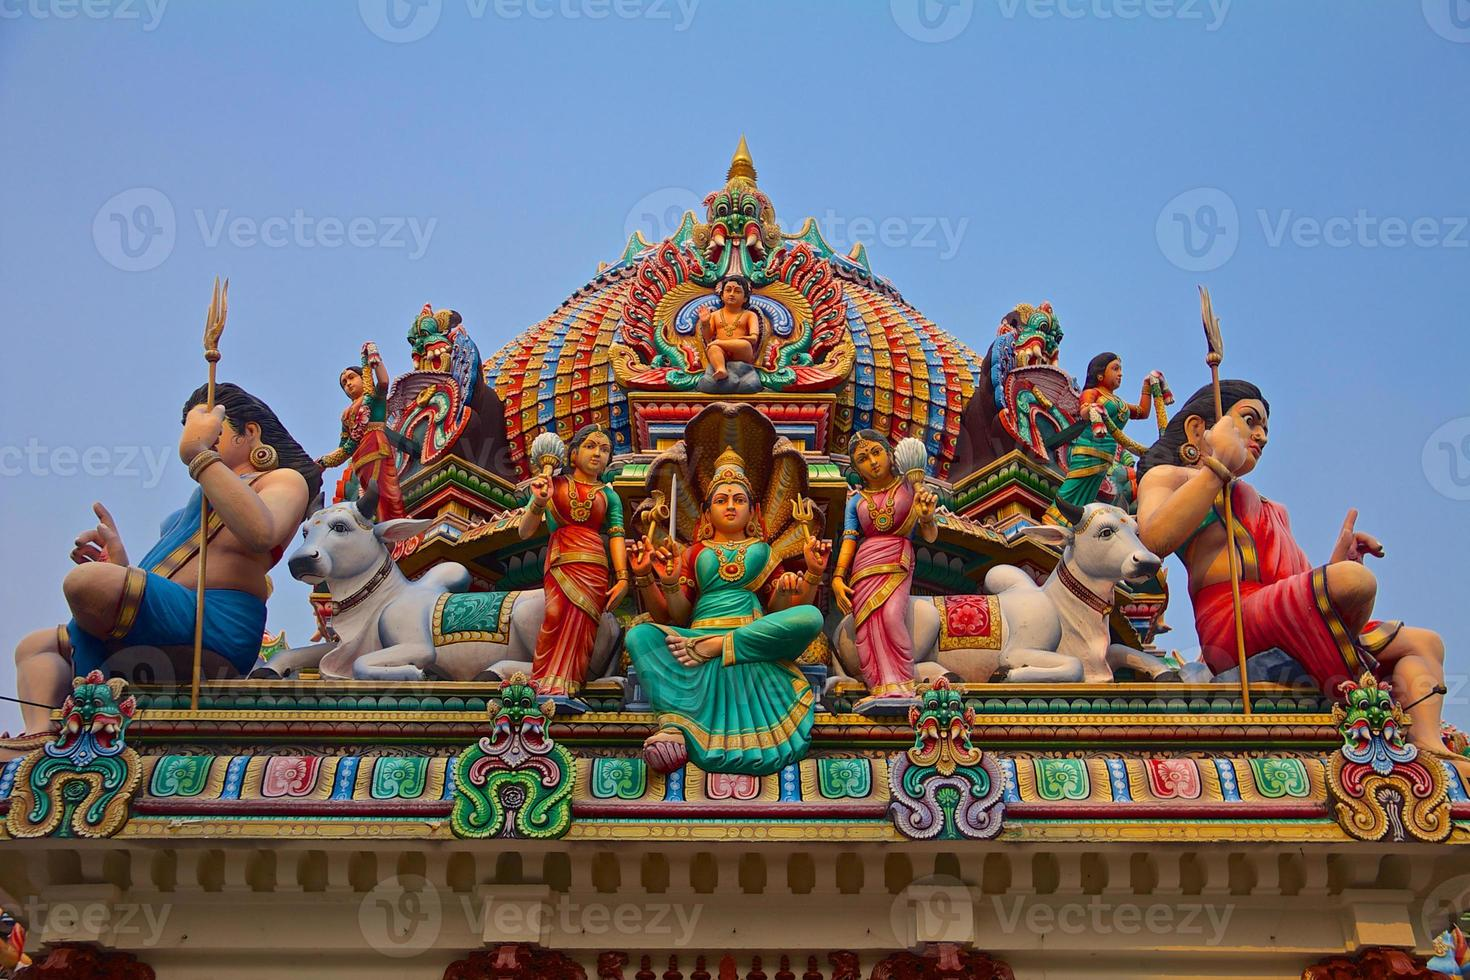 Hindu gods on a temple roof photo